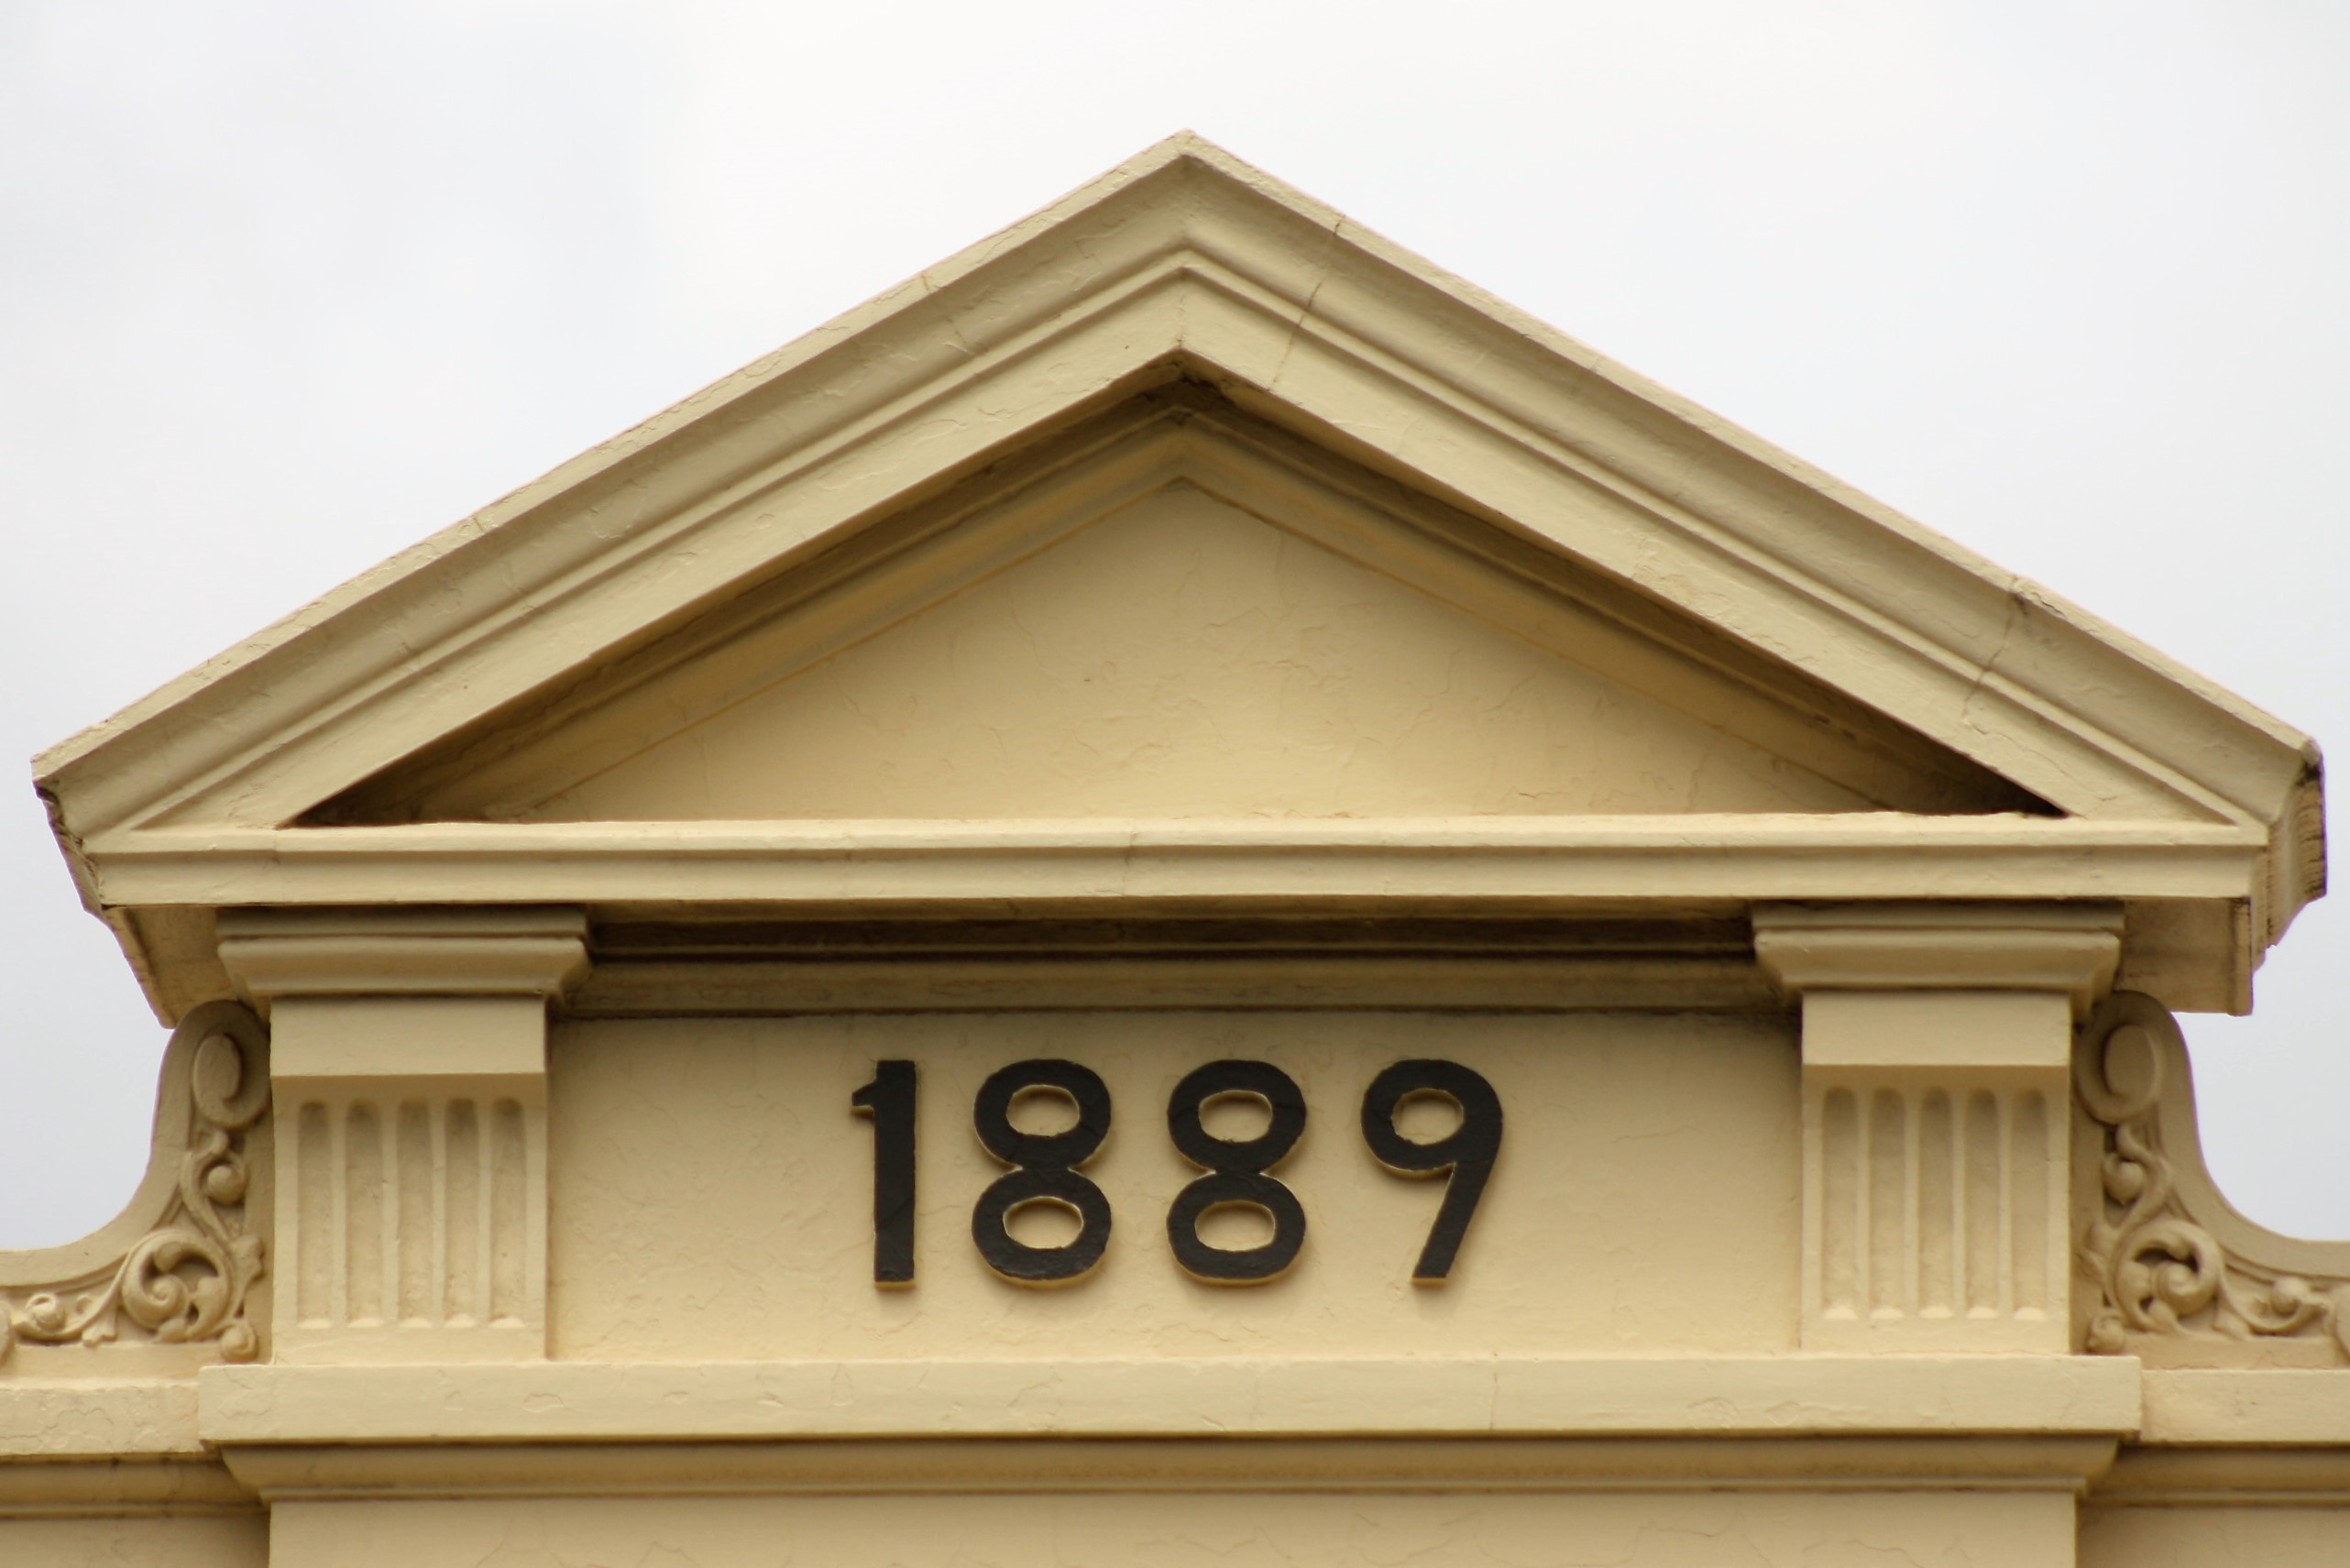 Date on building - 1889